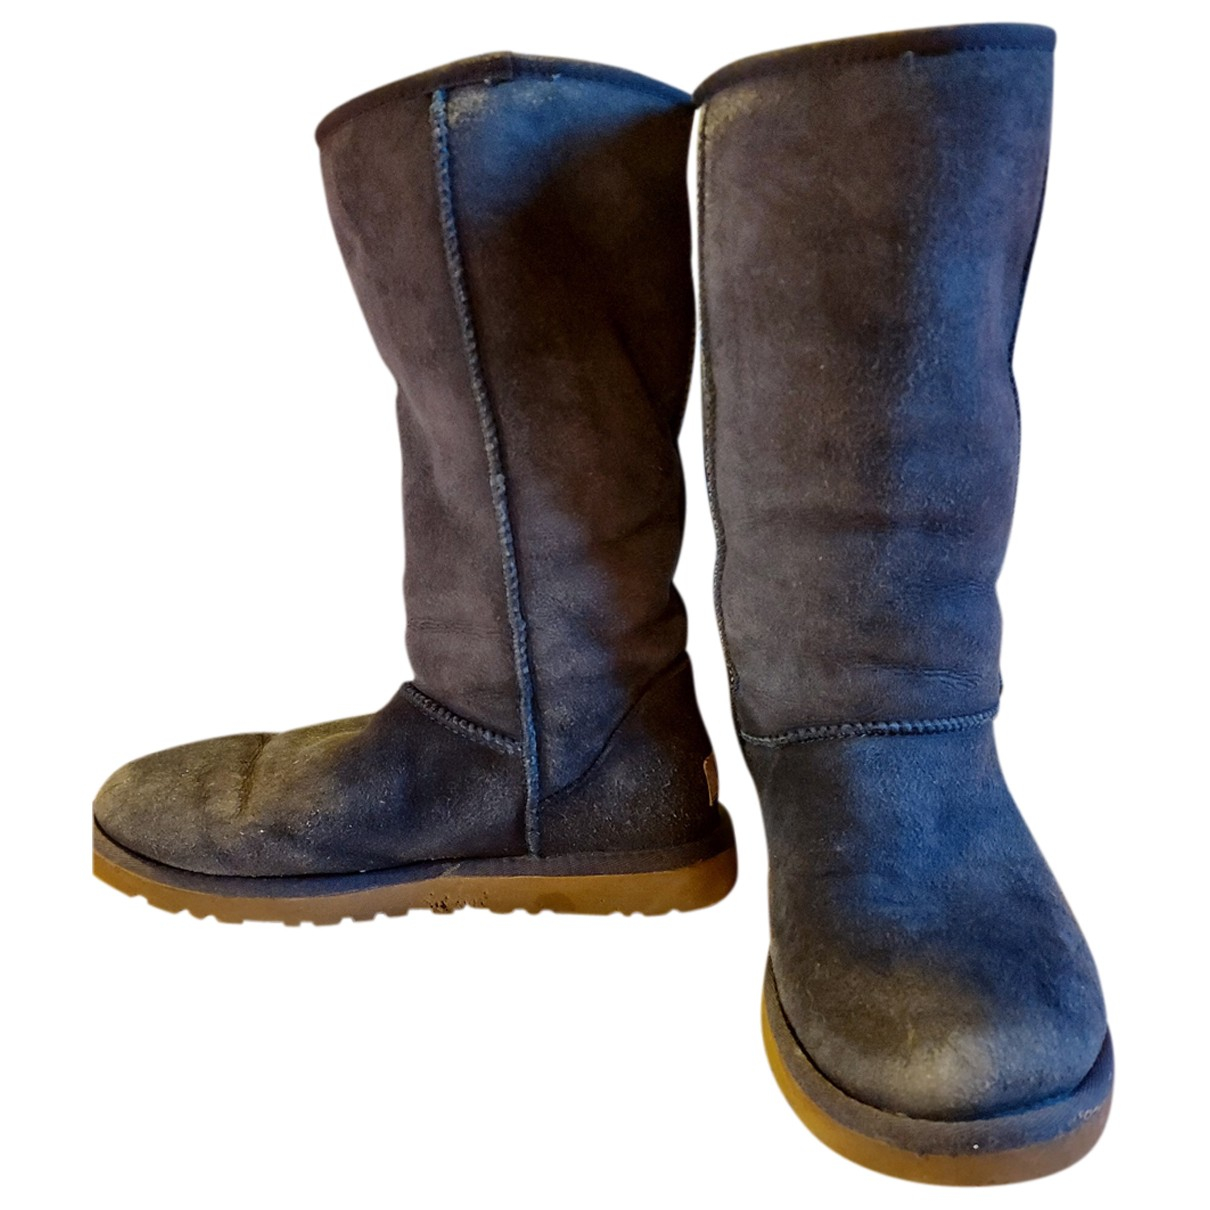 Ugg N Blue Suede Boots for Women 37 EU